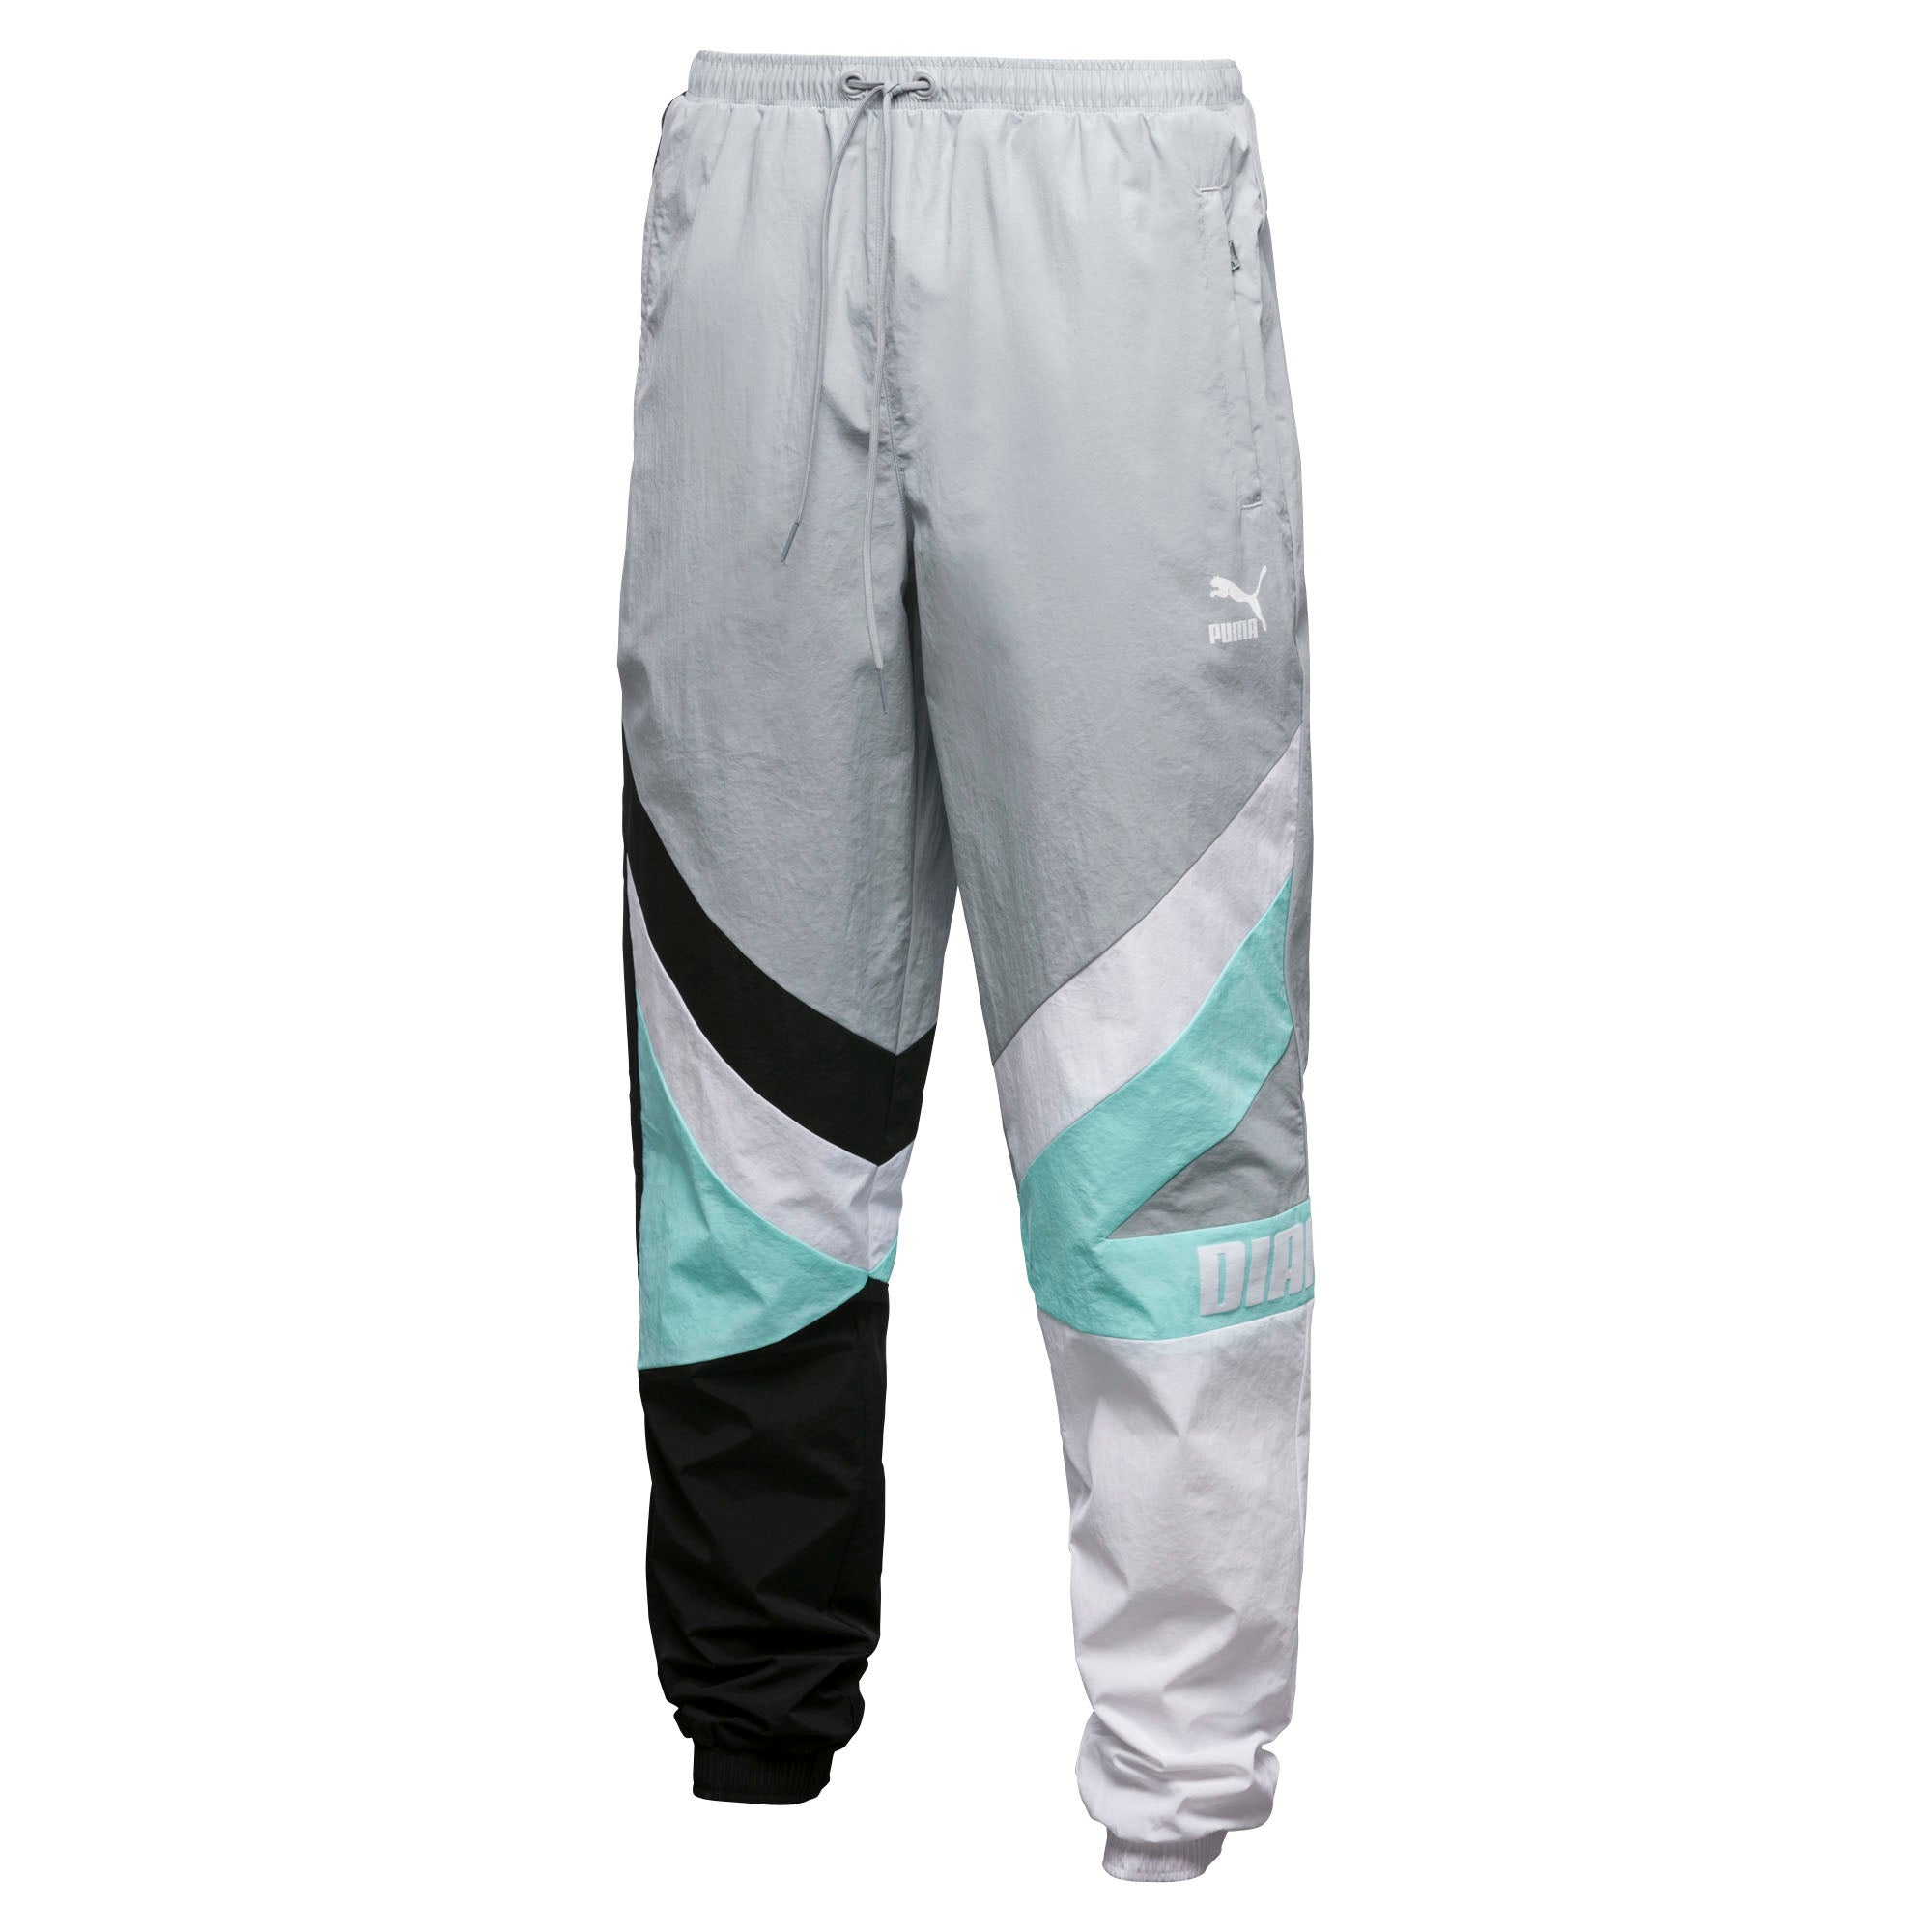 3dfa78f627cedf Diamond Supply Co. Diamond X Puma Track Pants